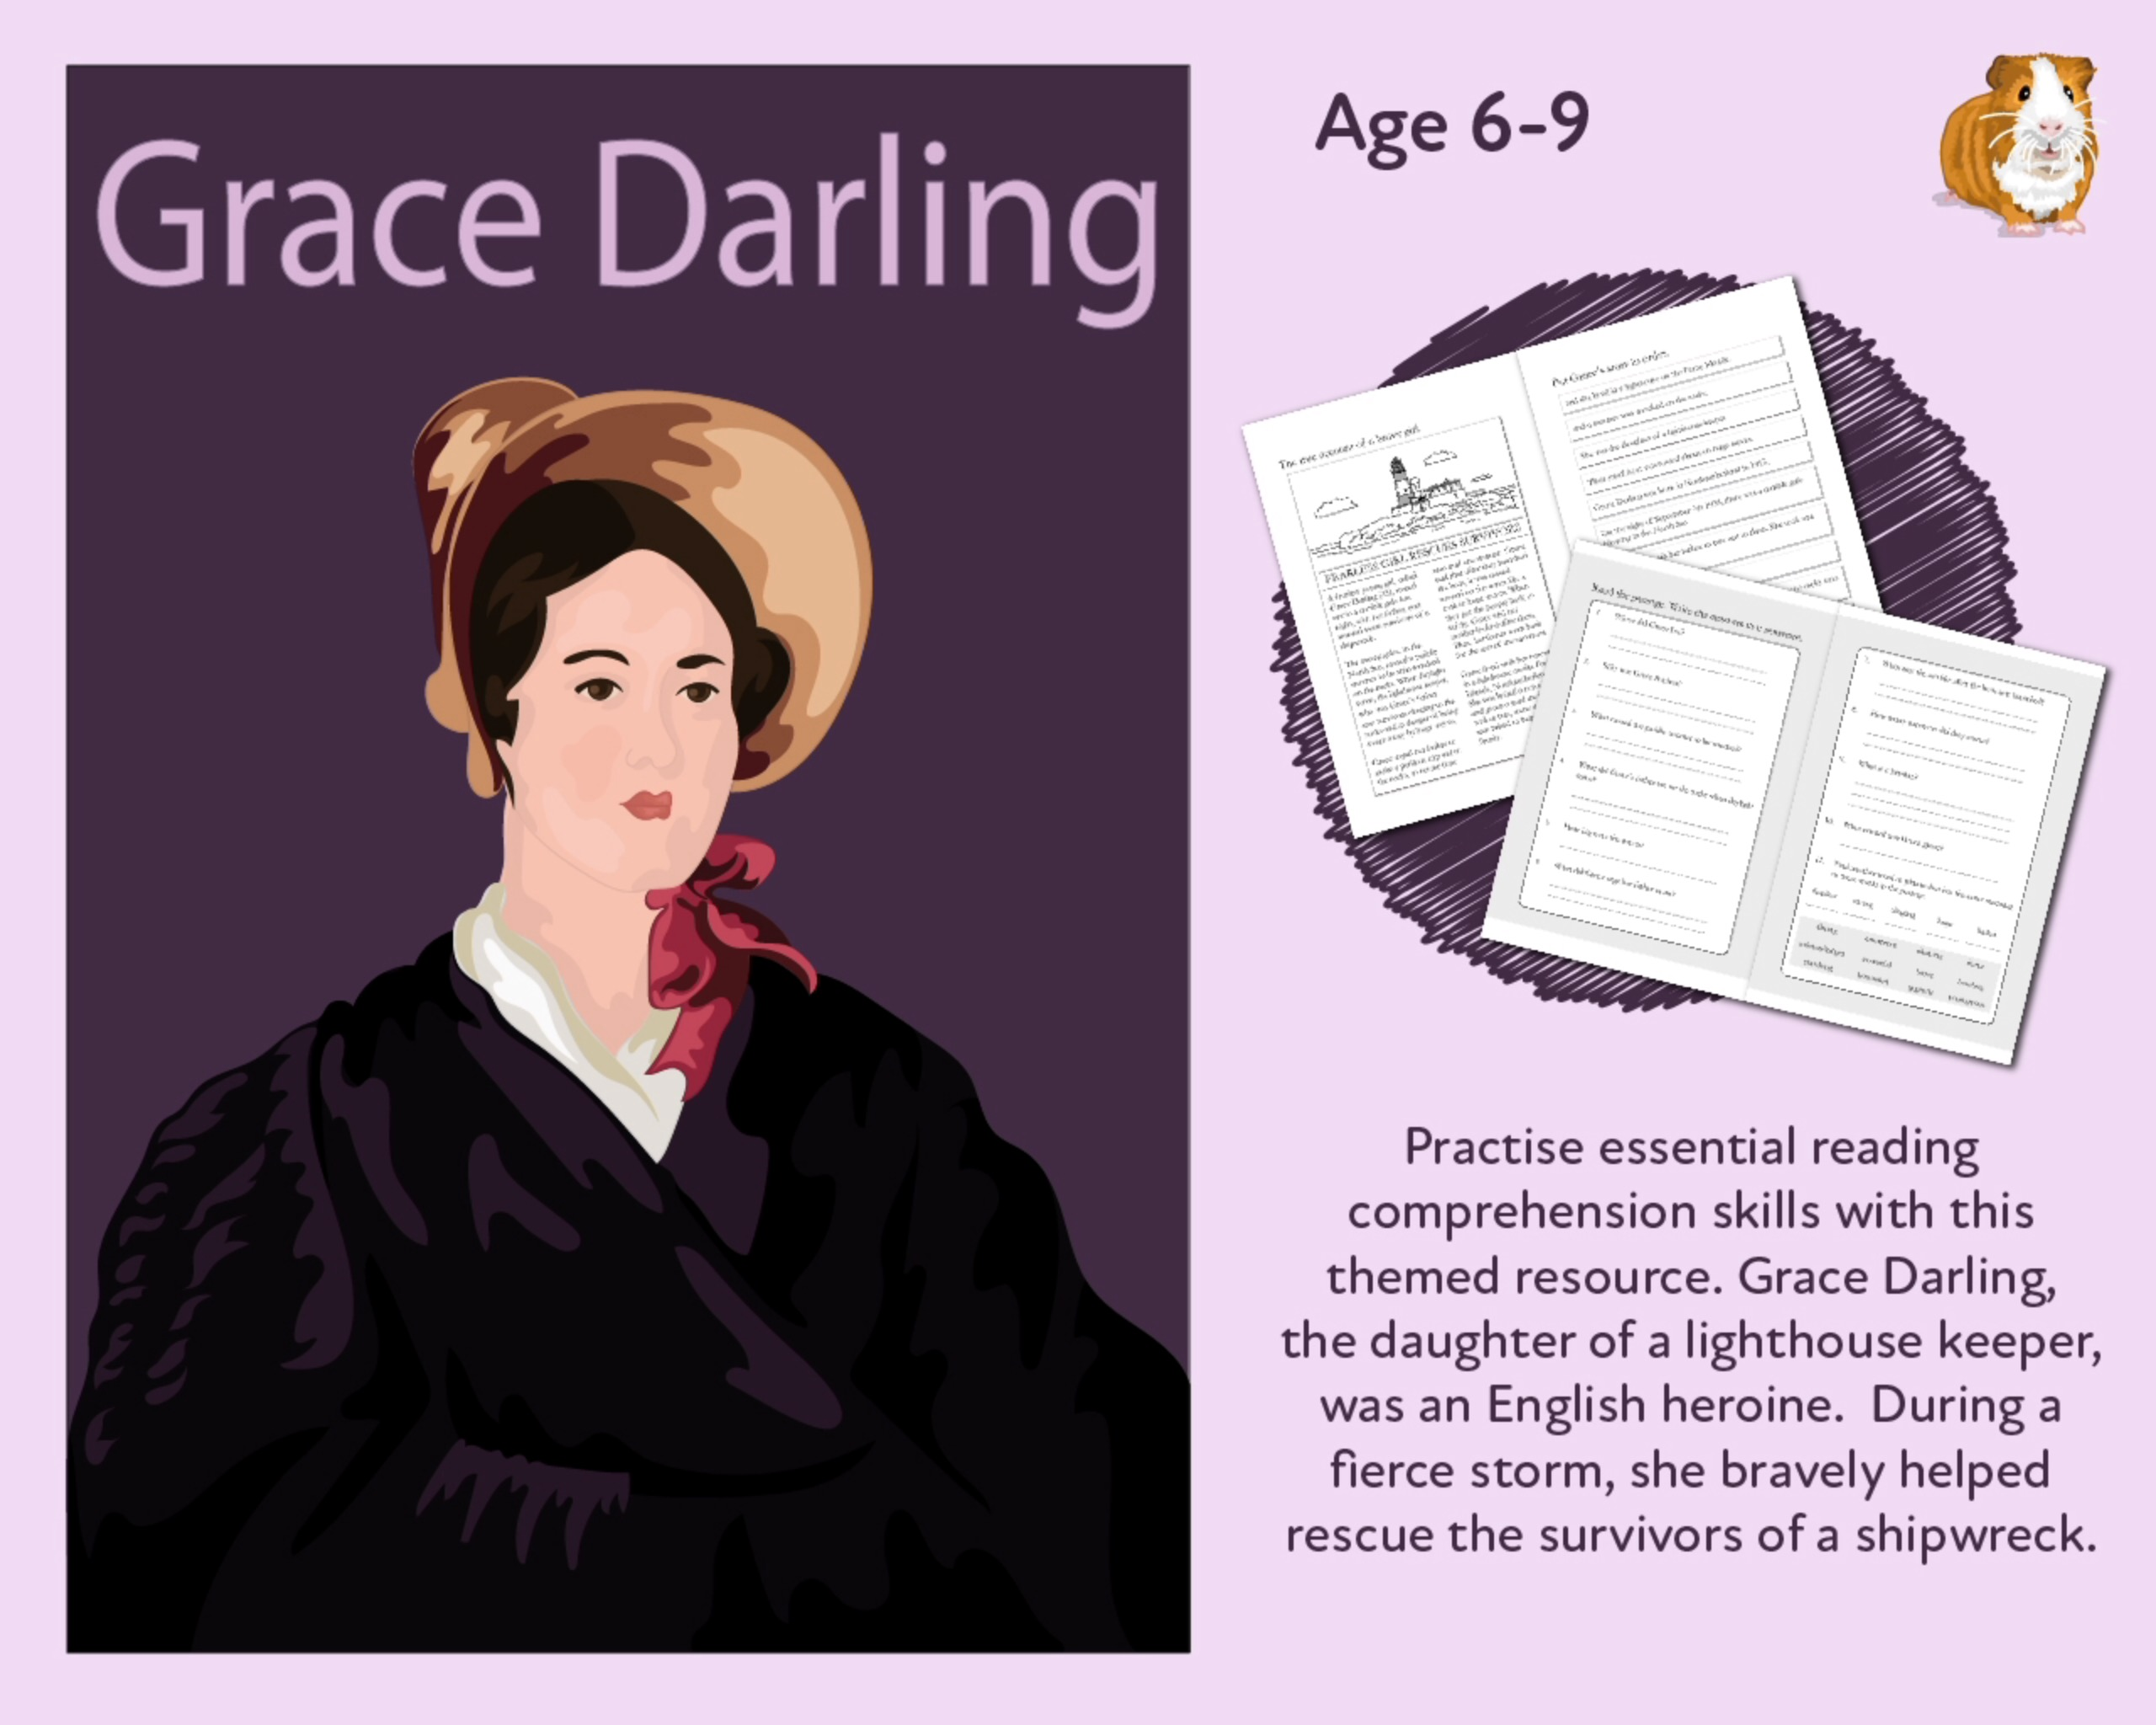 Let's Practise Our Reading Comprehension: Grace Darling The Famous Heroine (6-9 years)